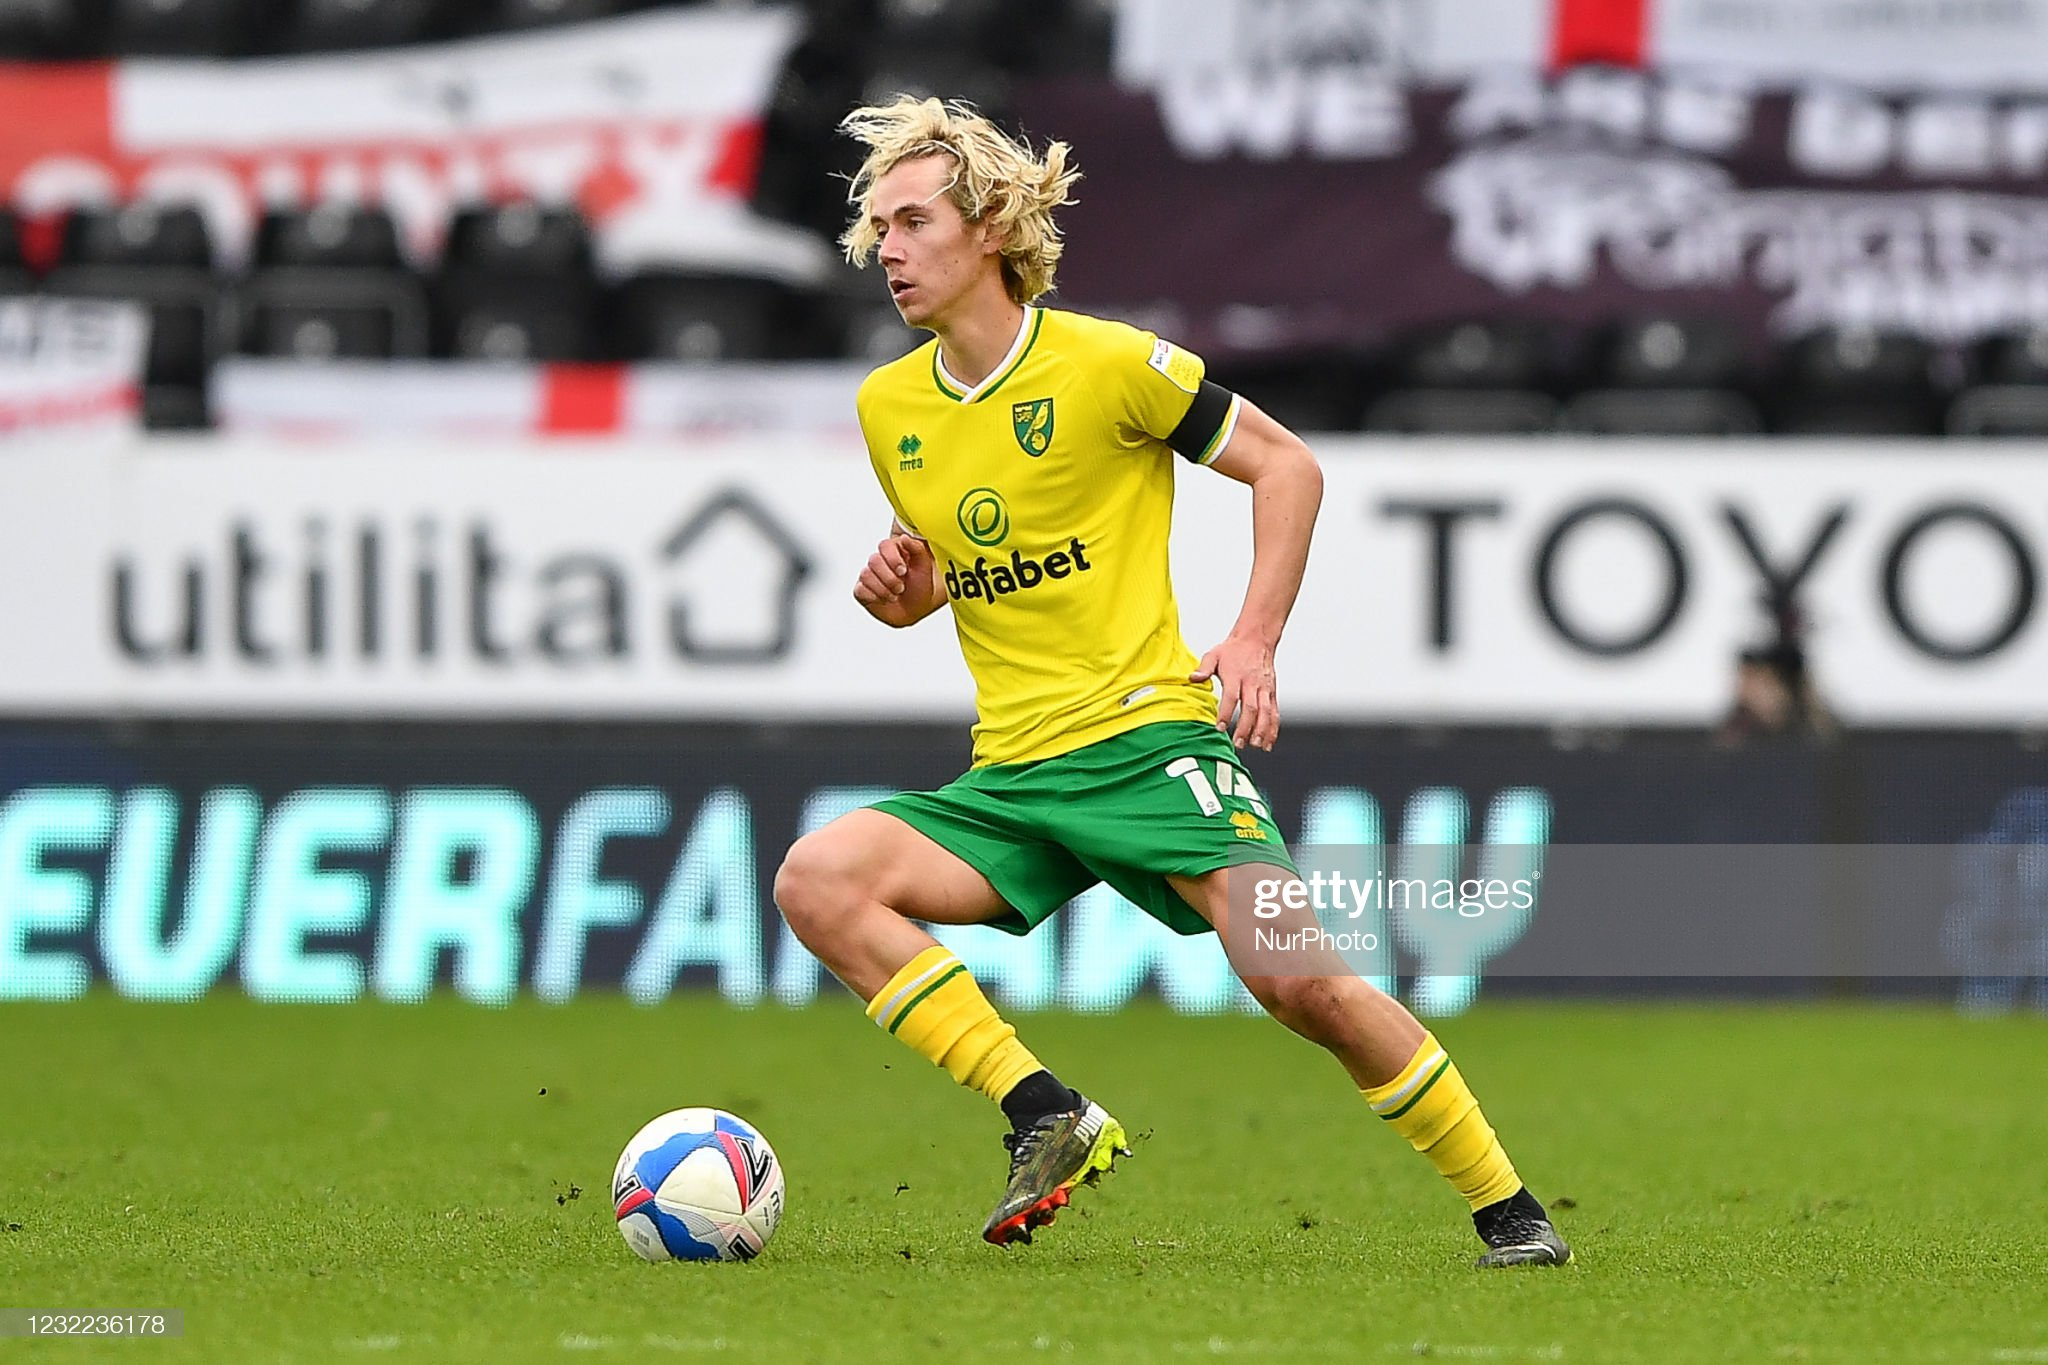 Norwich cannot afford to lose Cantwell as well